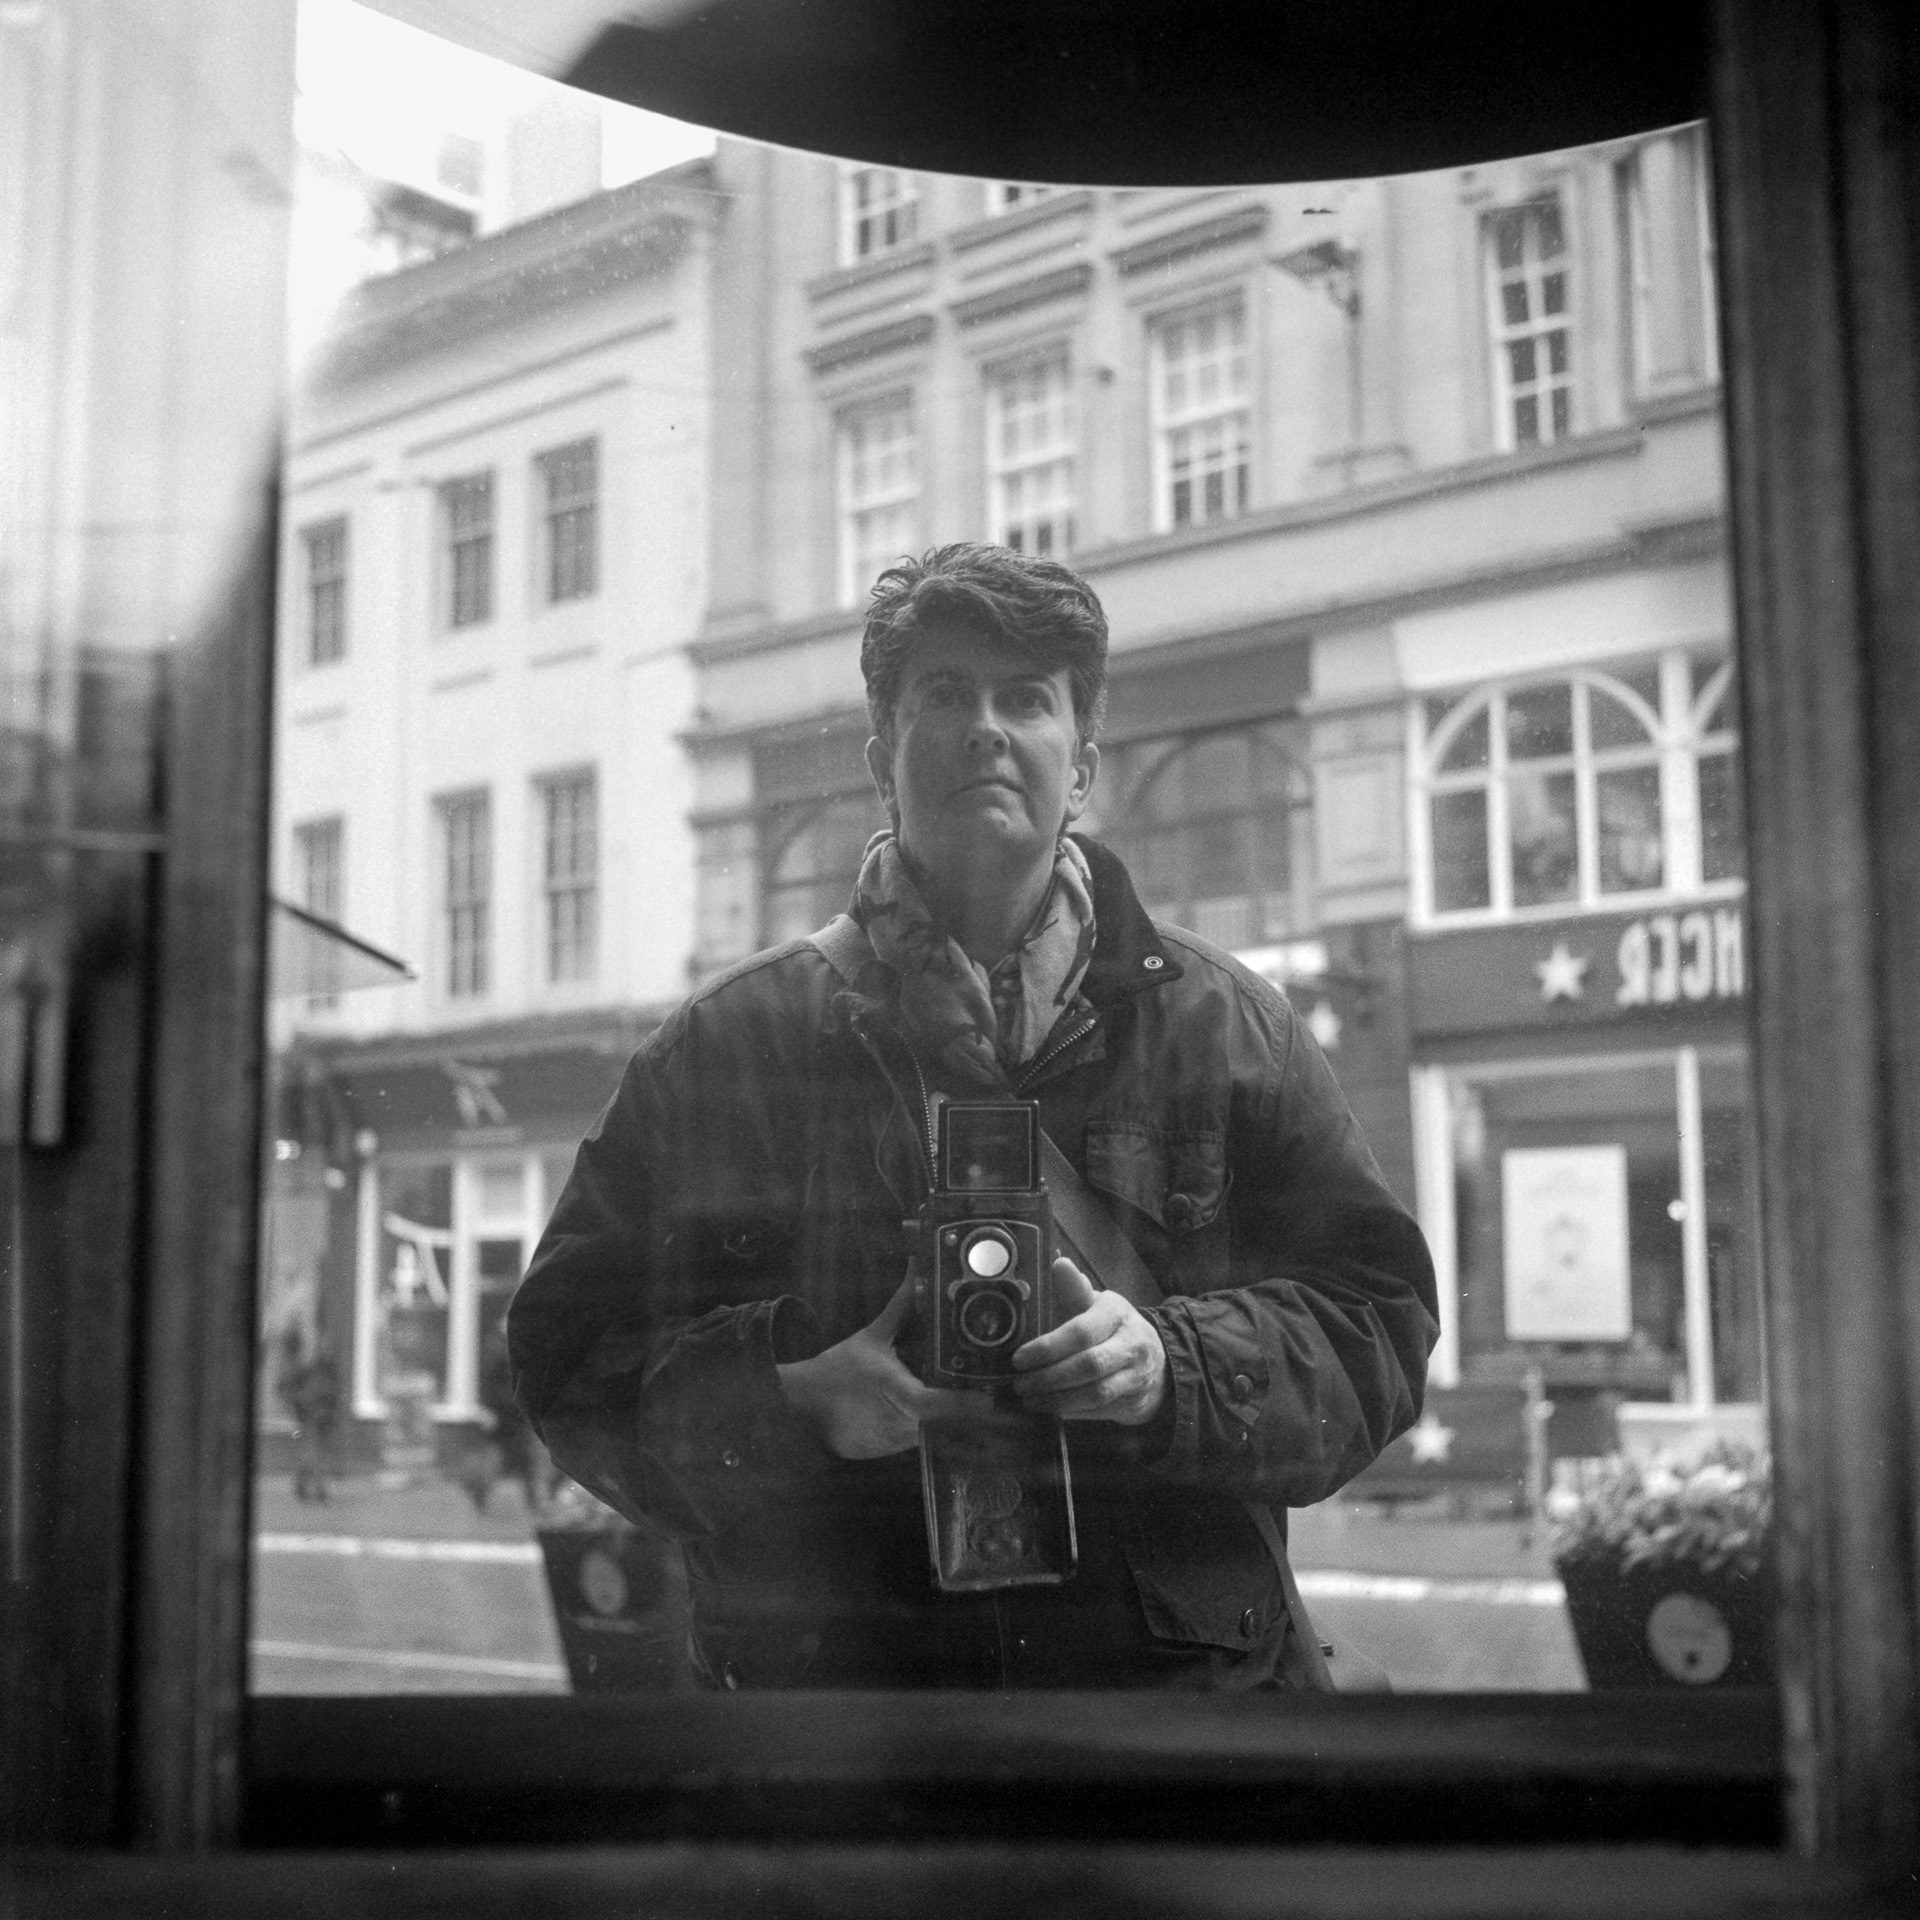 @paulasmithphoto · 2m Replying to @ILFORDPhoto A bit late in the day, but thought I'd post anyway. This was taken last year just before lockdown a photo walk for one in Birmingham. (I need a haircut already!) Taken Vivian stylie on a Rolleiflex Automat and Ilford HP5+ #ilfordphoto #fridayfavourites #meonfilm